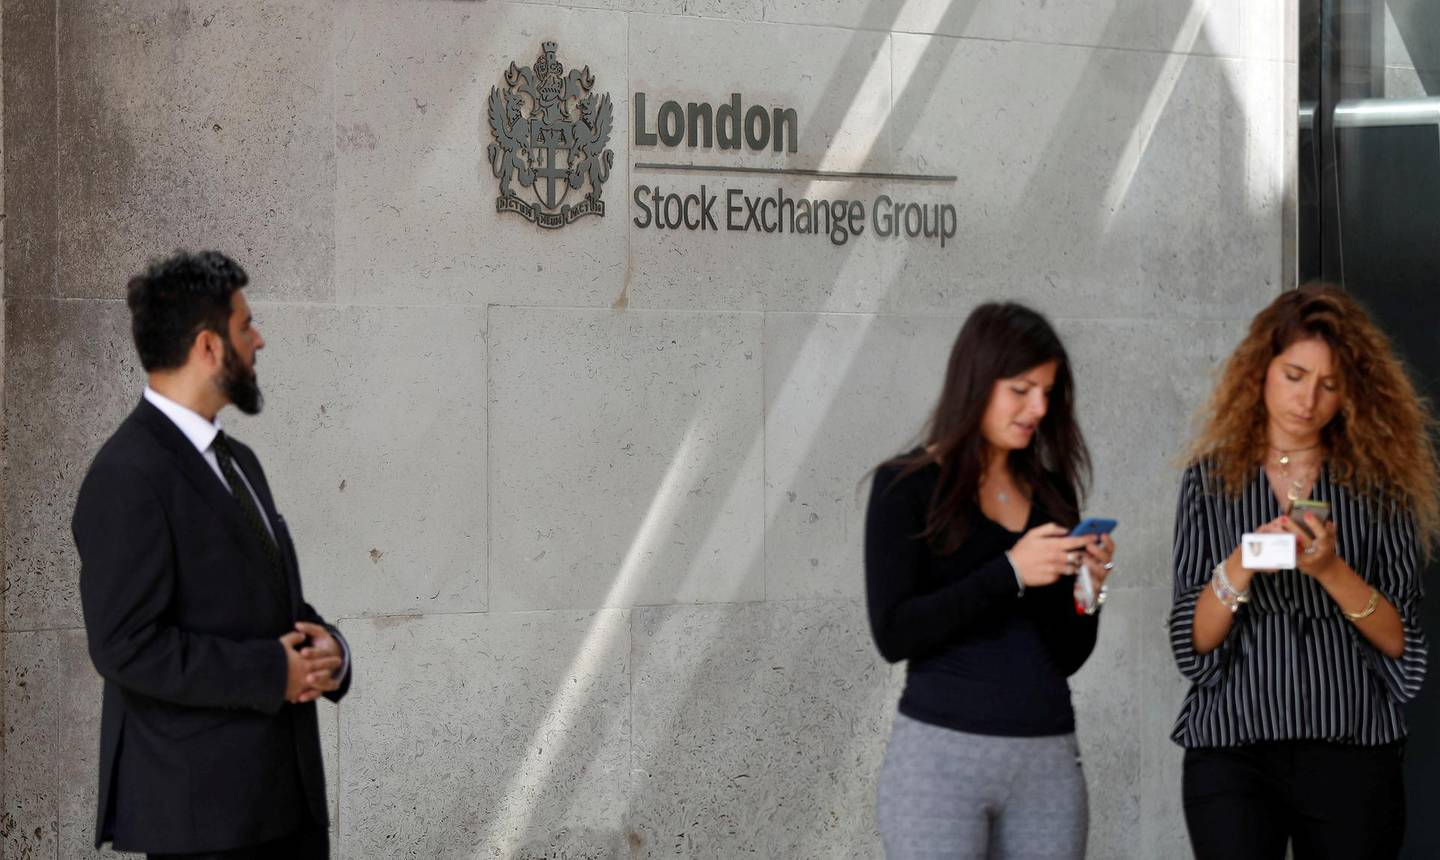 FILE PHOTO: People check their mobile phones as they stand outside the entrance of the London Stock Exchange in London, Britain. Aug 23, 2018. REUTERS/Peter Nicholls/File Photo